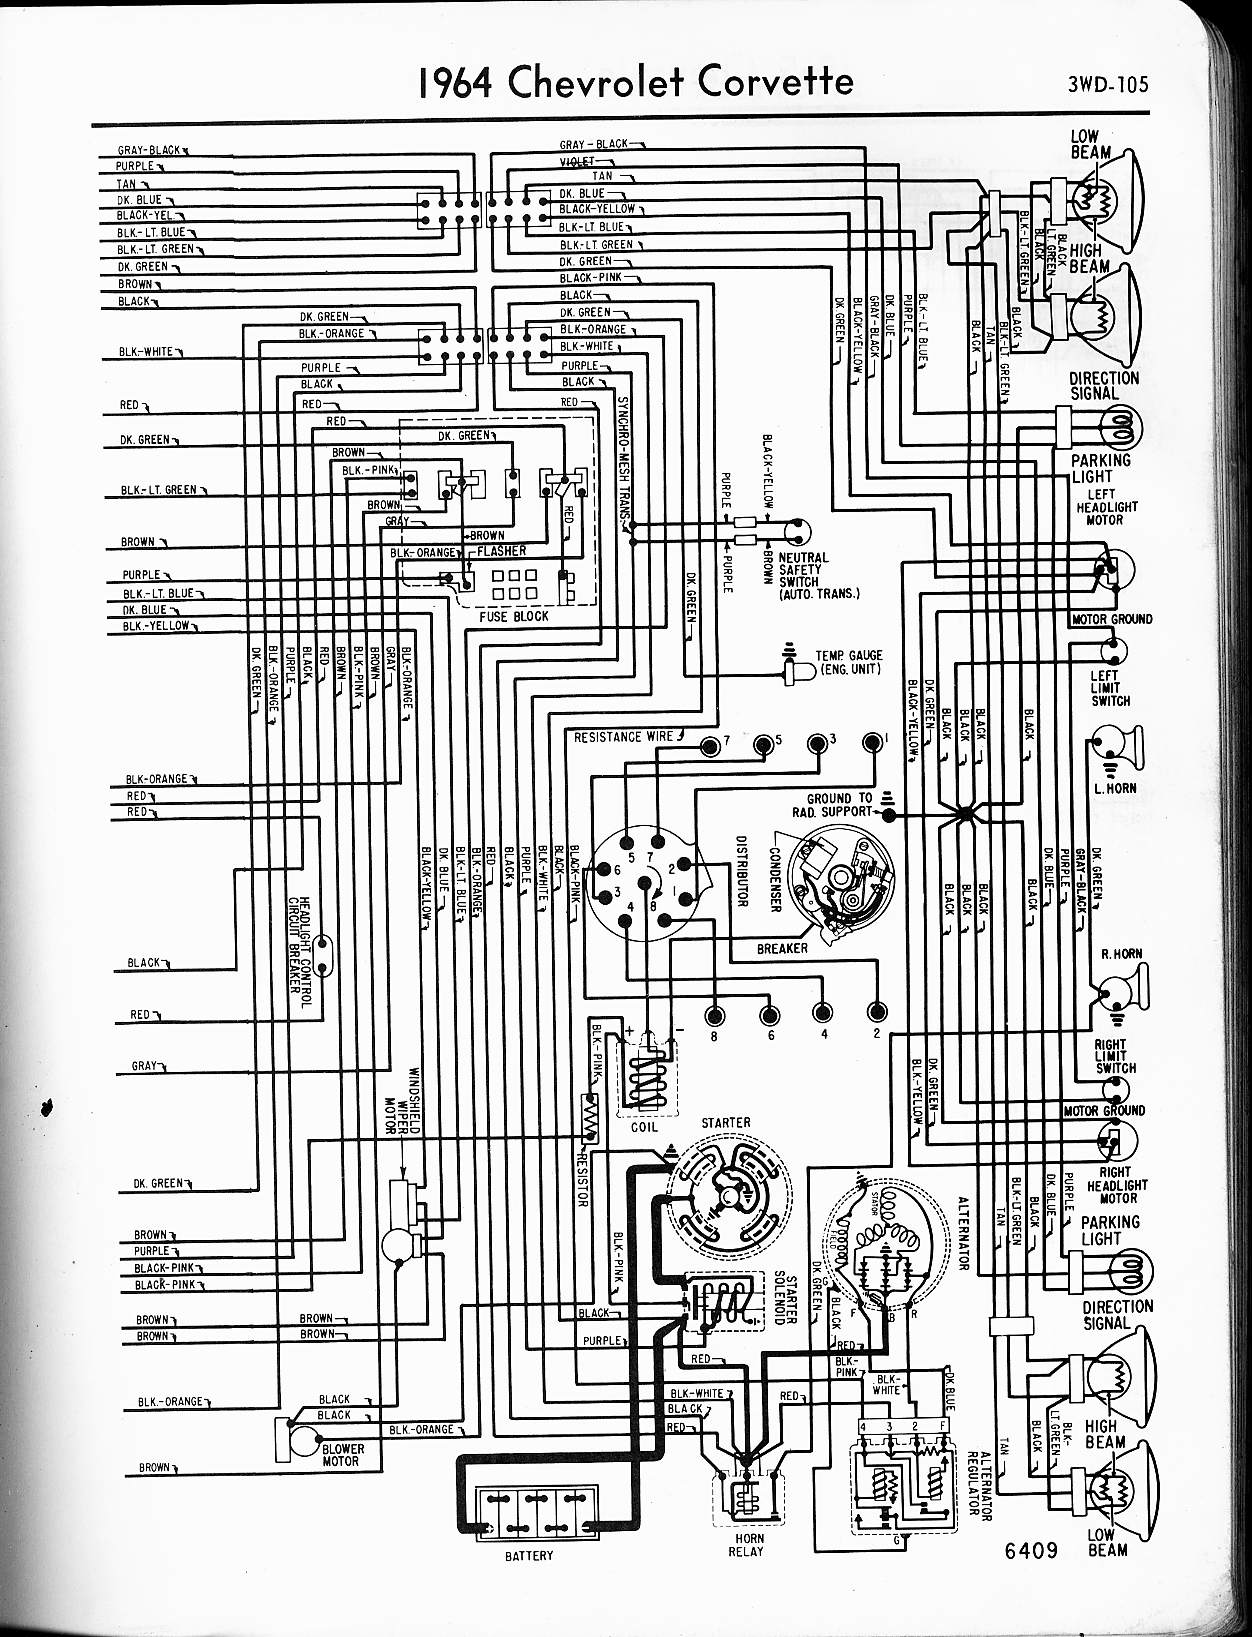 1965 corvette wiring diagram wire center u2022 rh linxglobal co